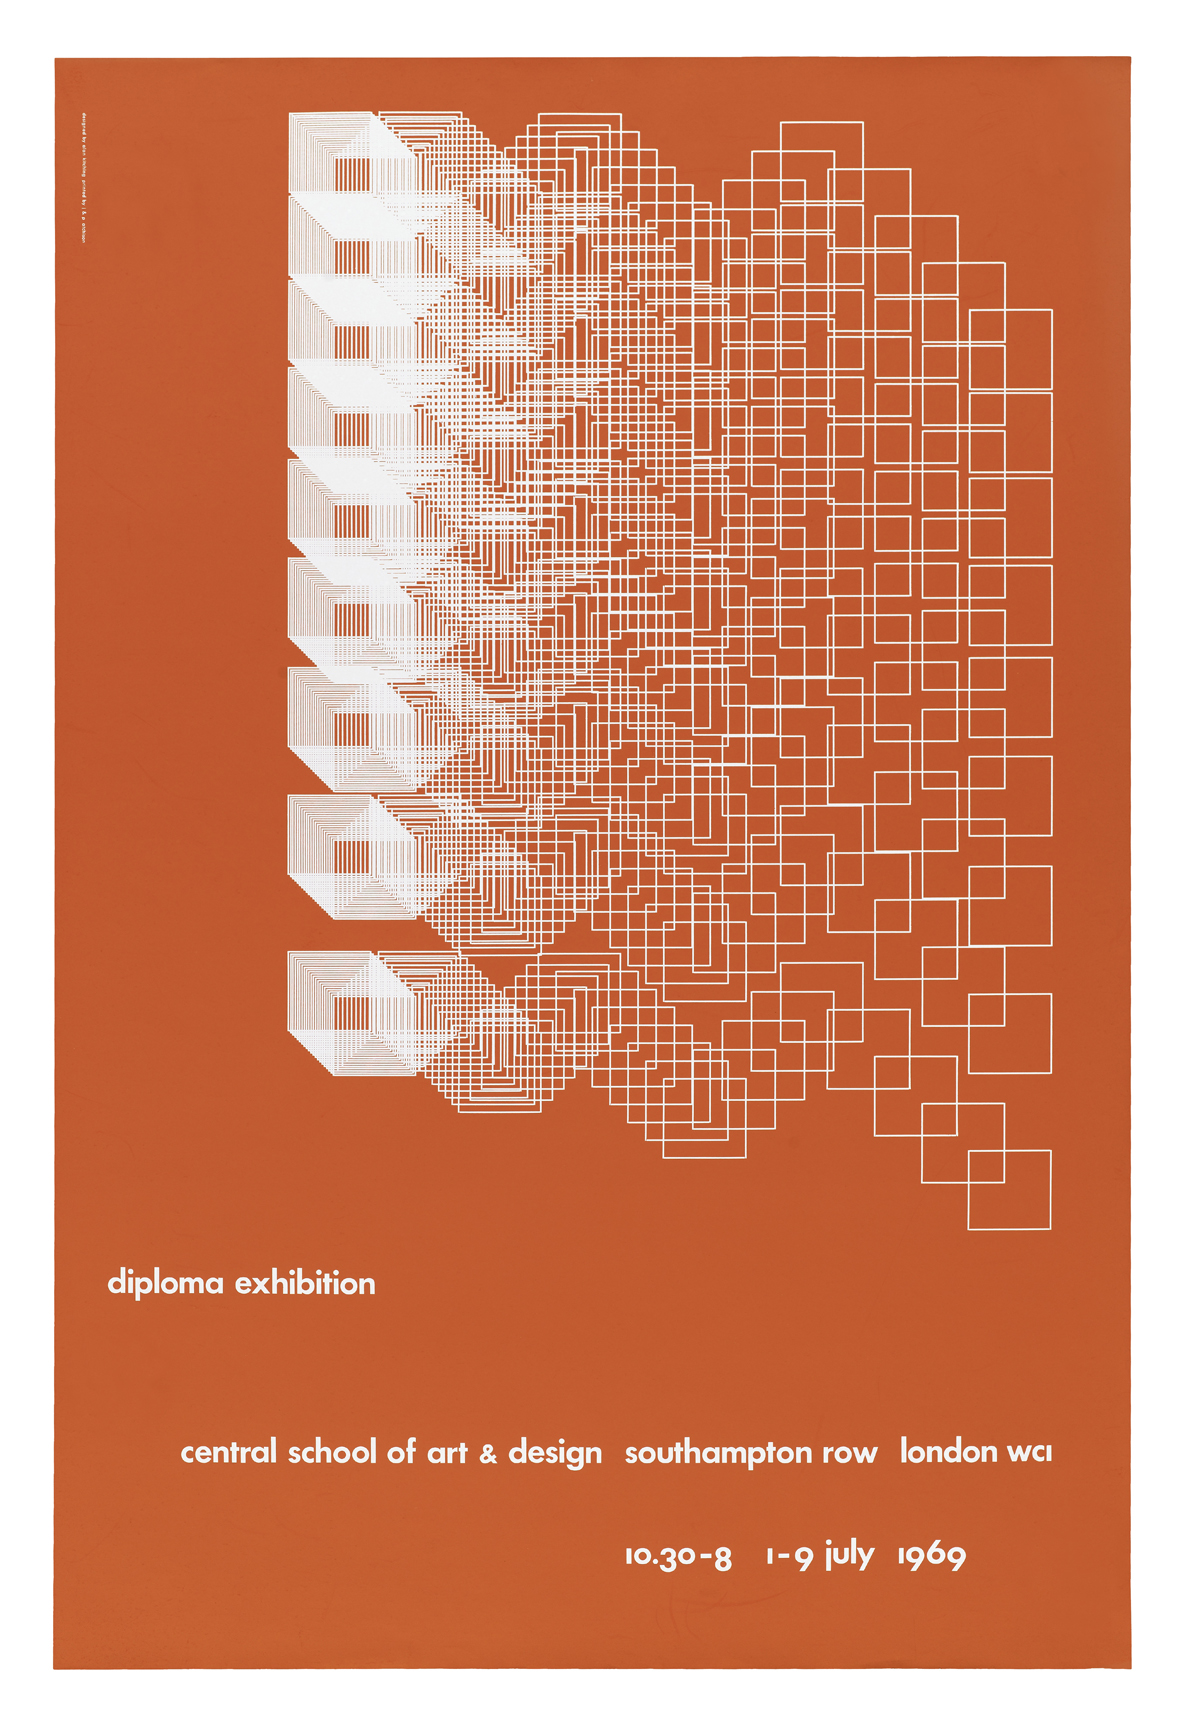 Poster for Central School of Art and Design, 1969